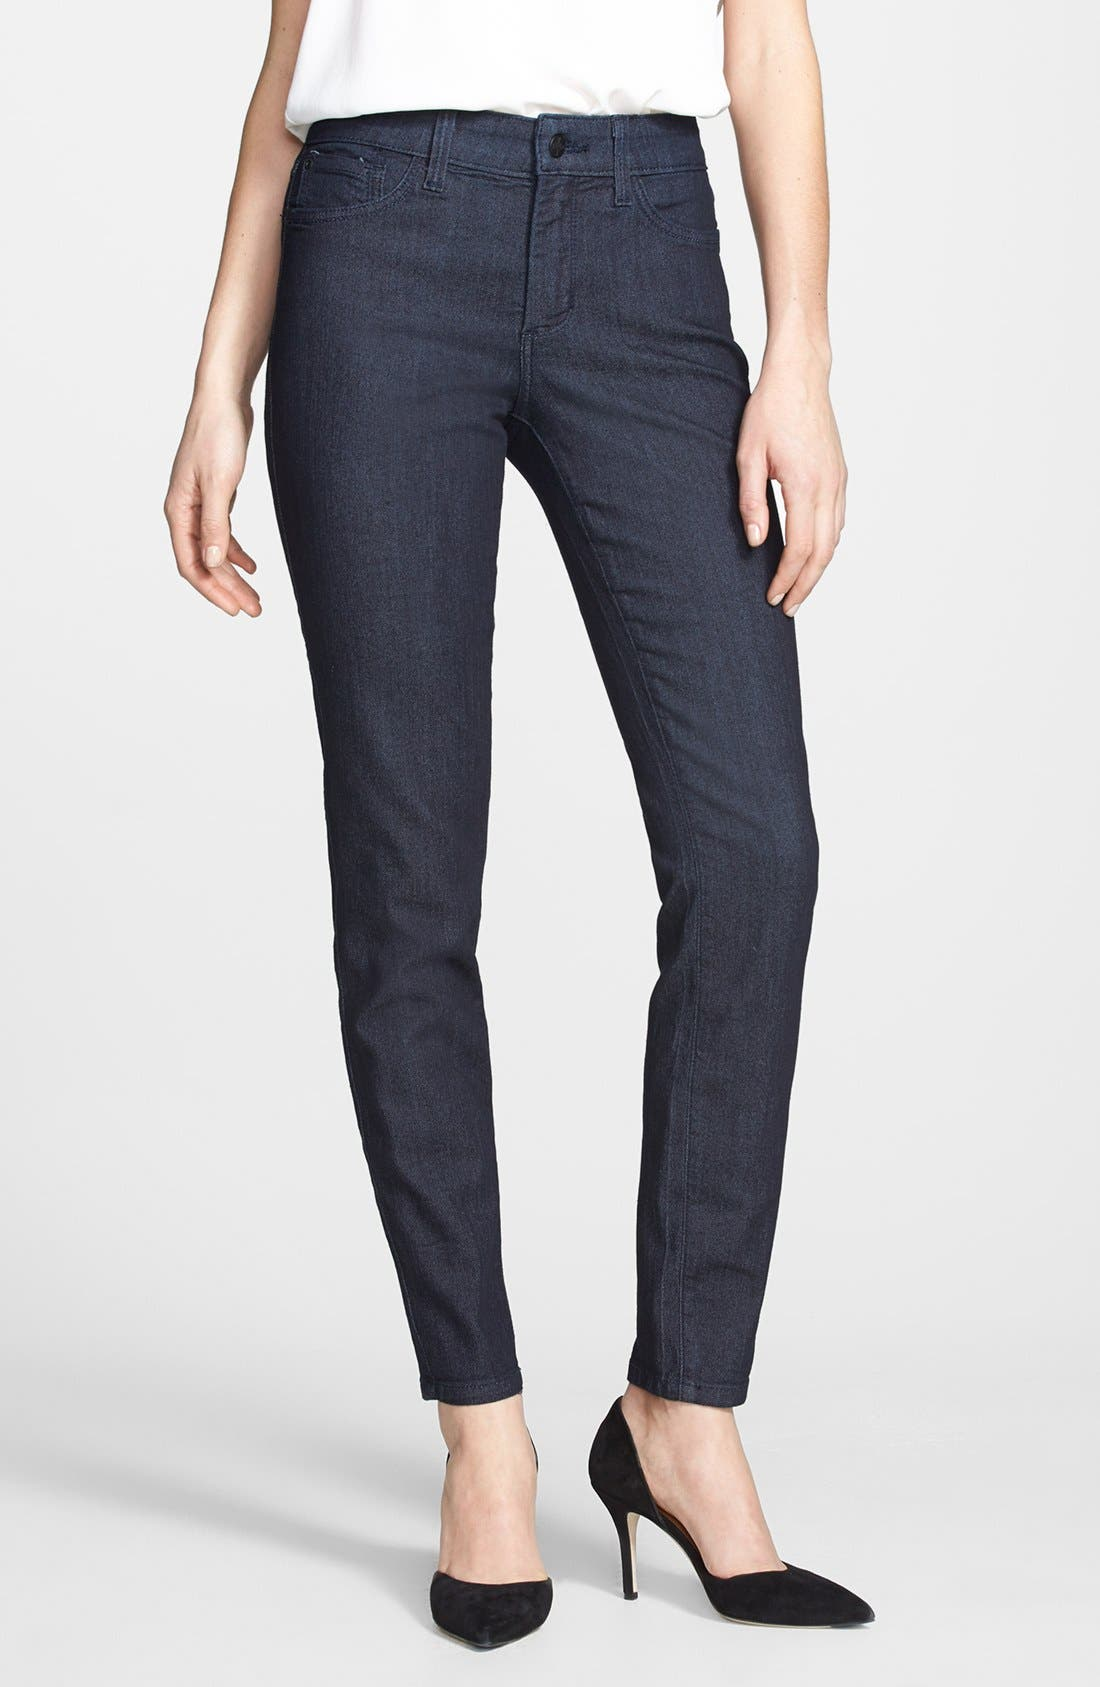 Alternate Image 1 Selected - NYDJ 'Ami' Tonal Stitch Stretch Skinny Jeans (Dark Enzyme) (Regular & Petite)